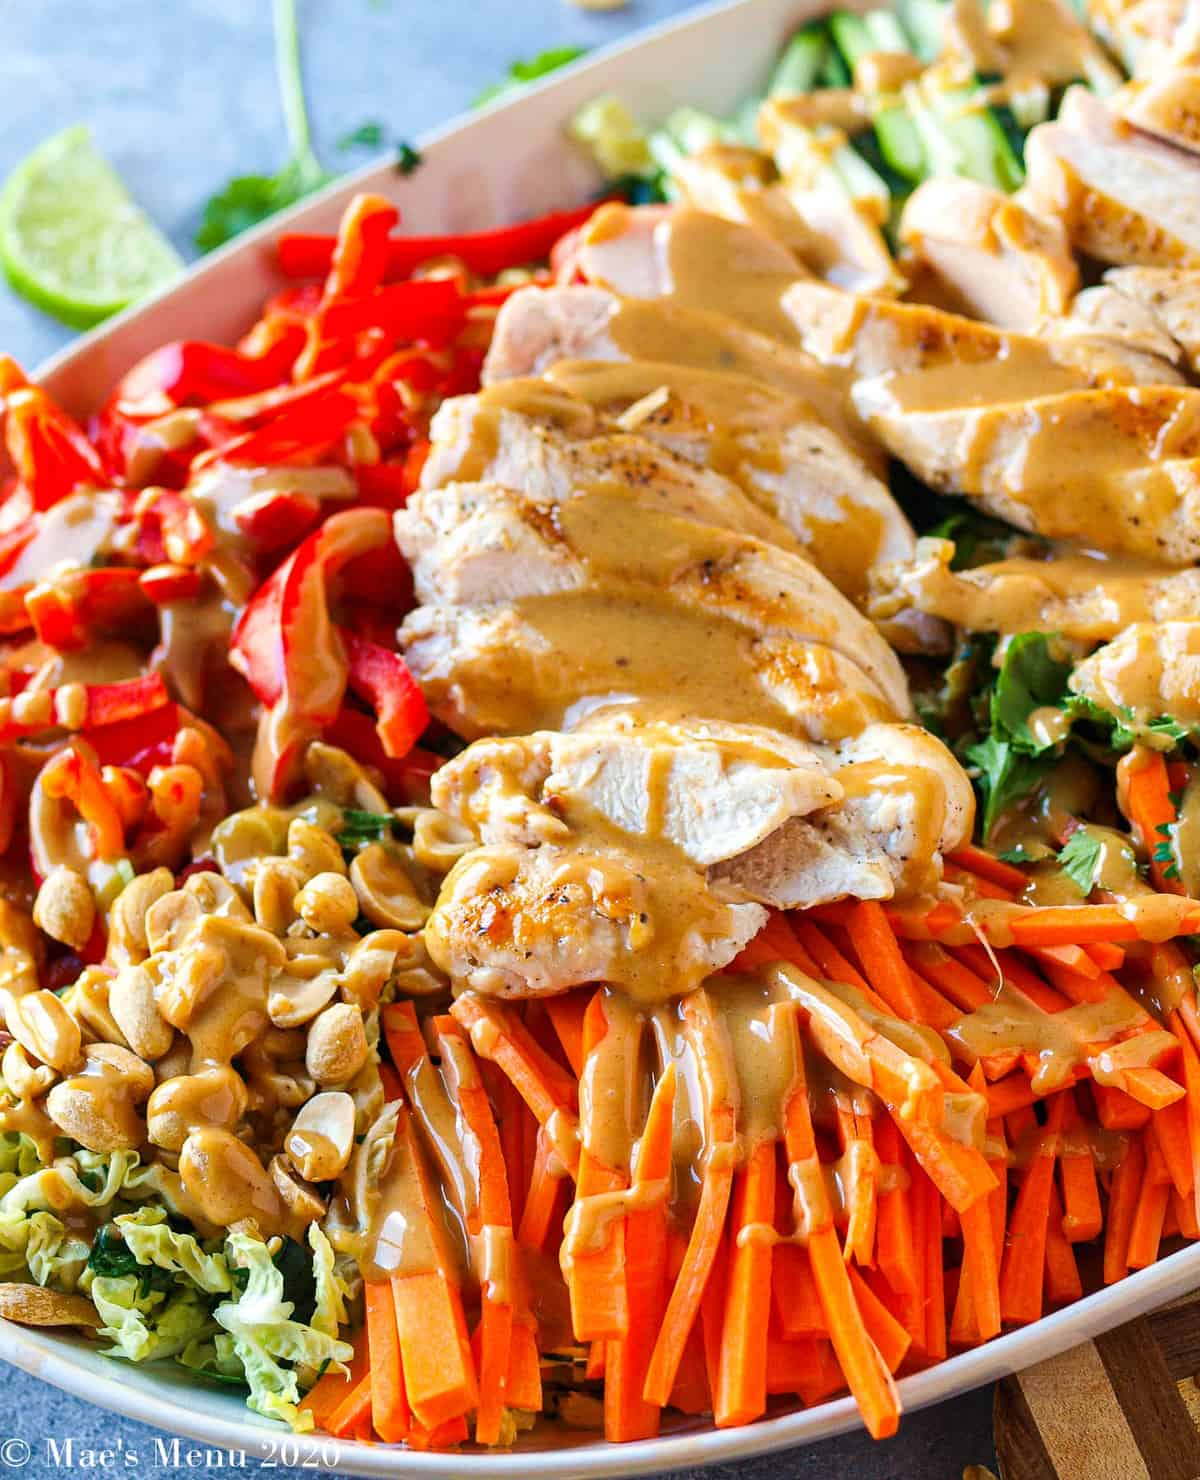 A side angle shot of a large platter of Thai Chicken salad with peanut dressing. The salad is dressed with the peanut sauce but isn't dressed yet.